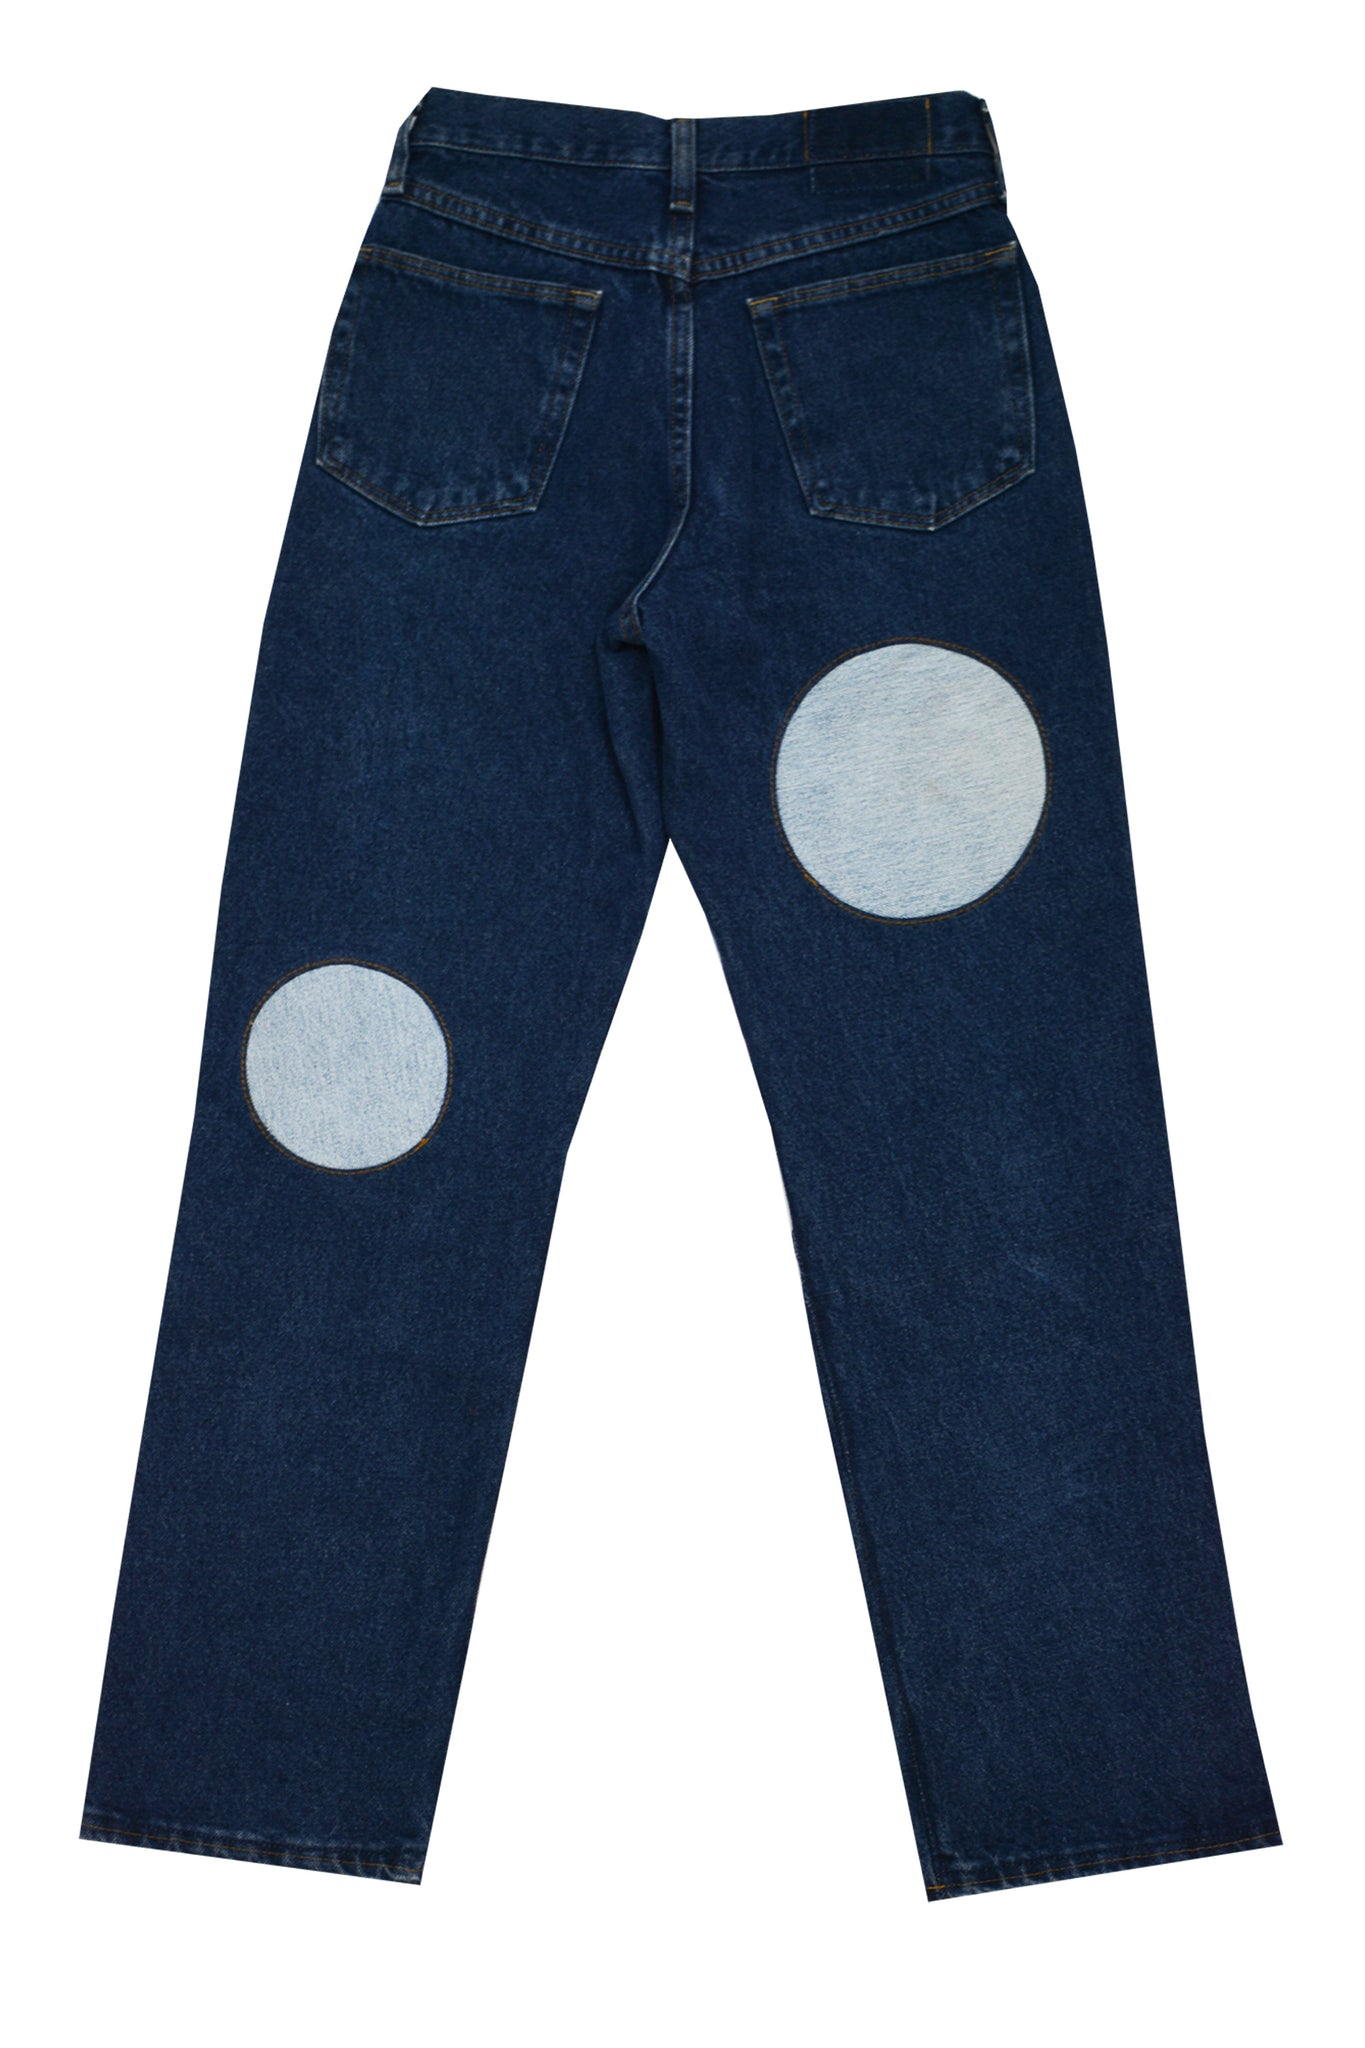 DOT INSERTION JEANS | MADE-TO-ORDER